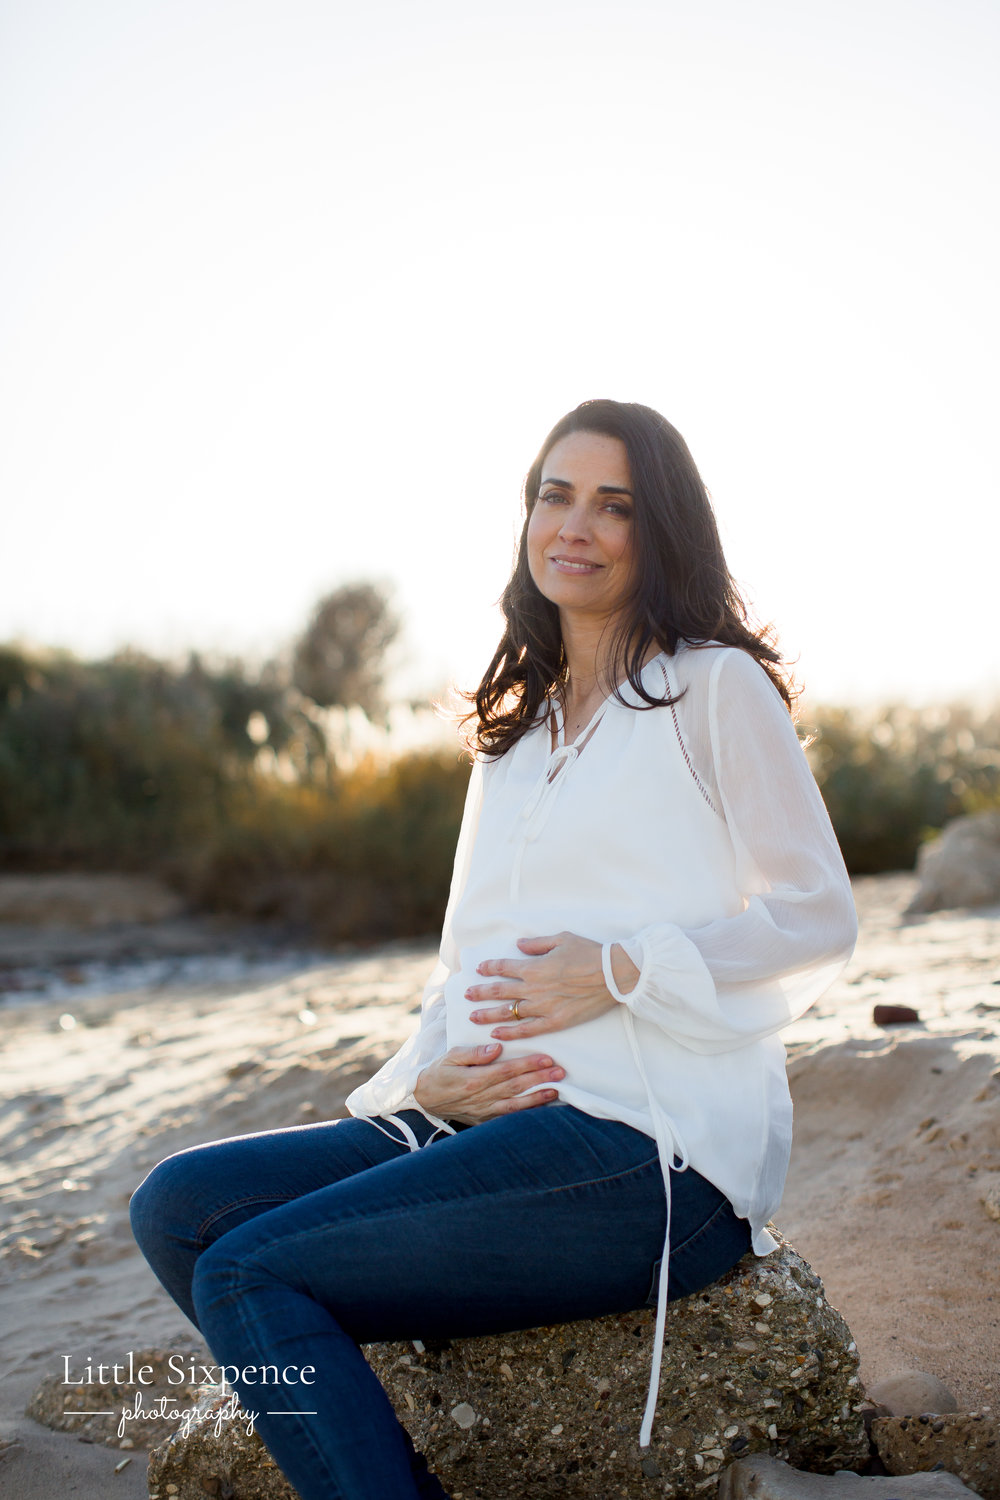 Little Sixpence Photography - Relaxed Maternity Photography.jpg